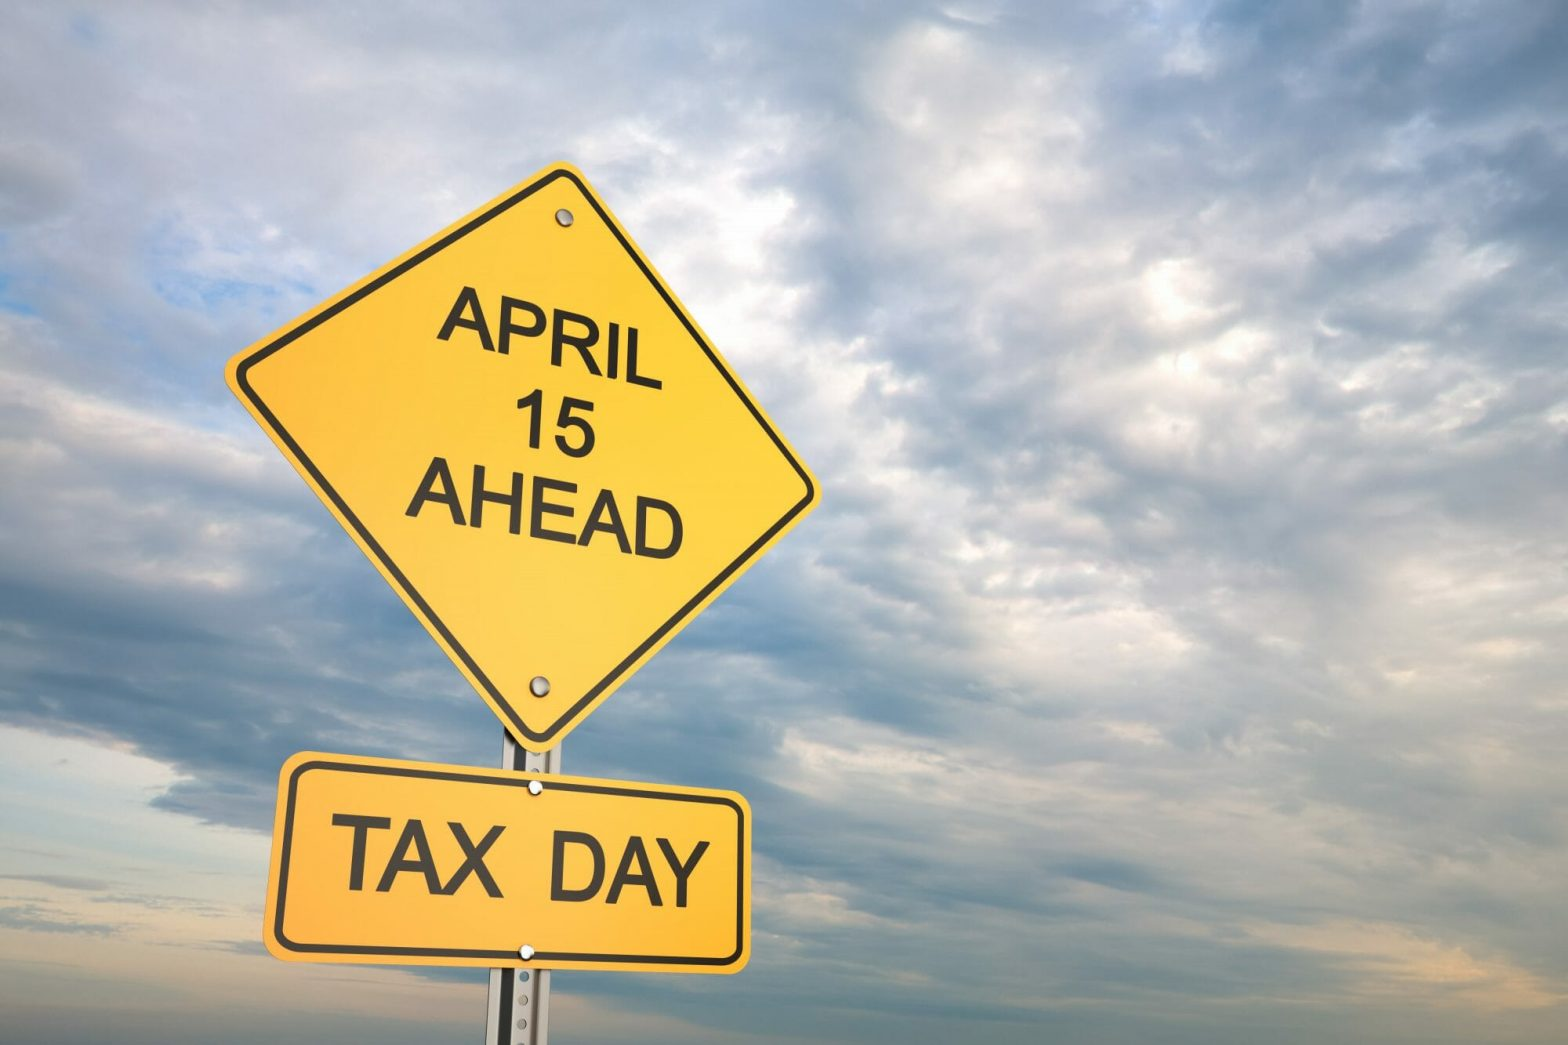 Tax Day Warning